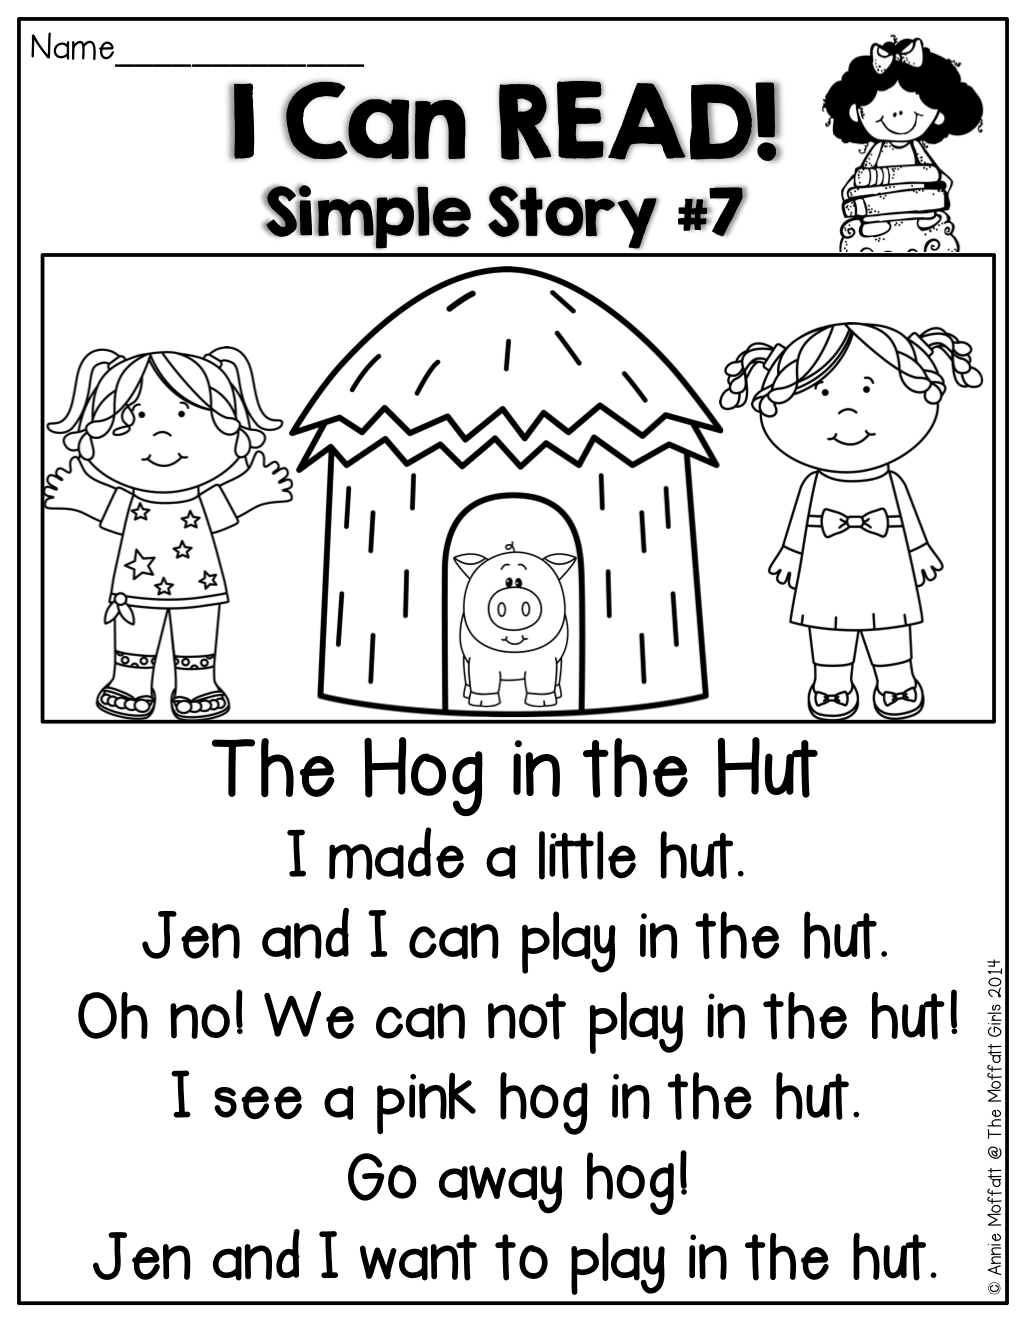 I Can Read Simple Stories Fun Little Stories That Kids Can Read With Sight Words And Decodable